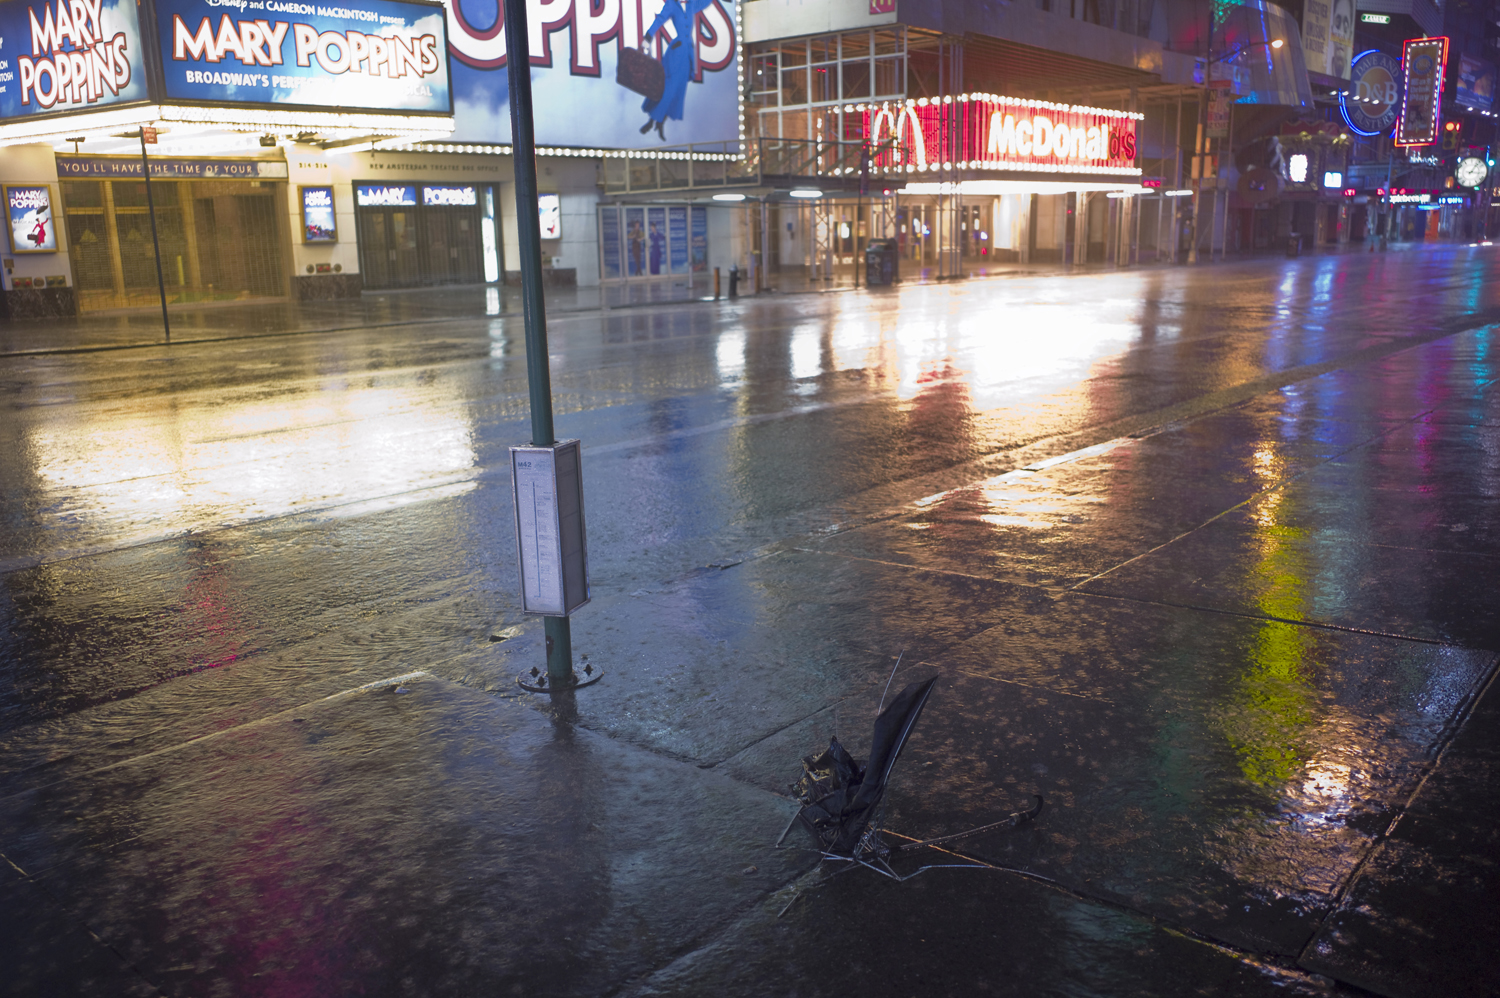 August 27, 2011, New York, NY. A crushed umbrella in a deserted Times Square during Hurricane Irene.